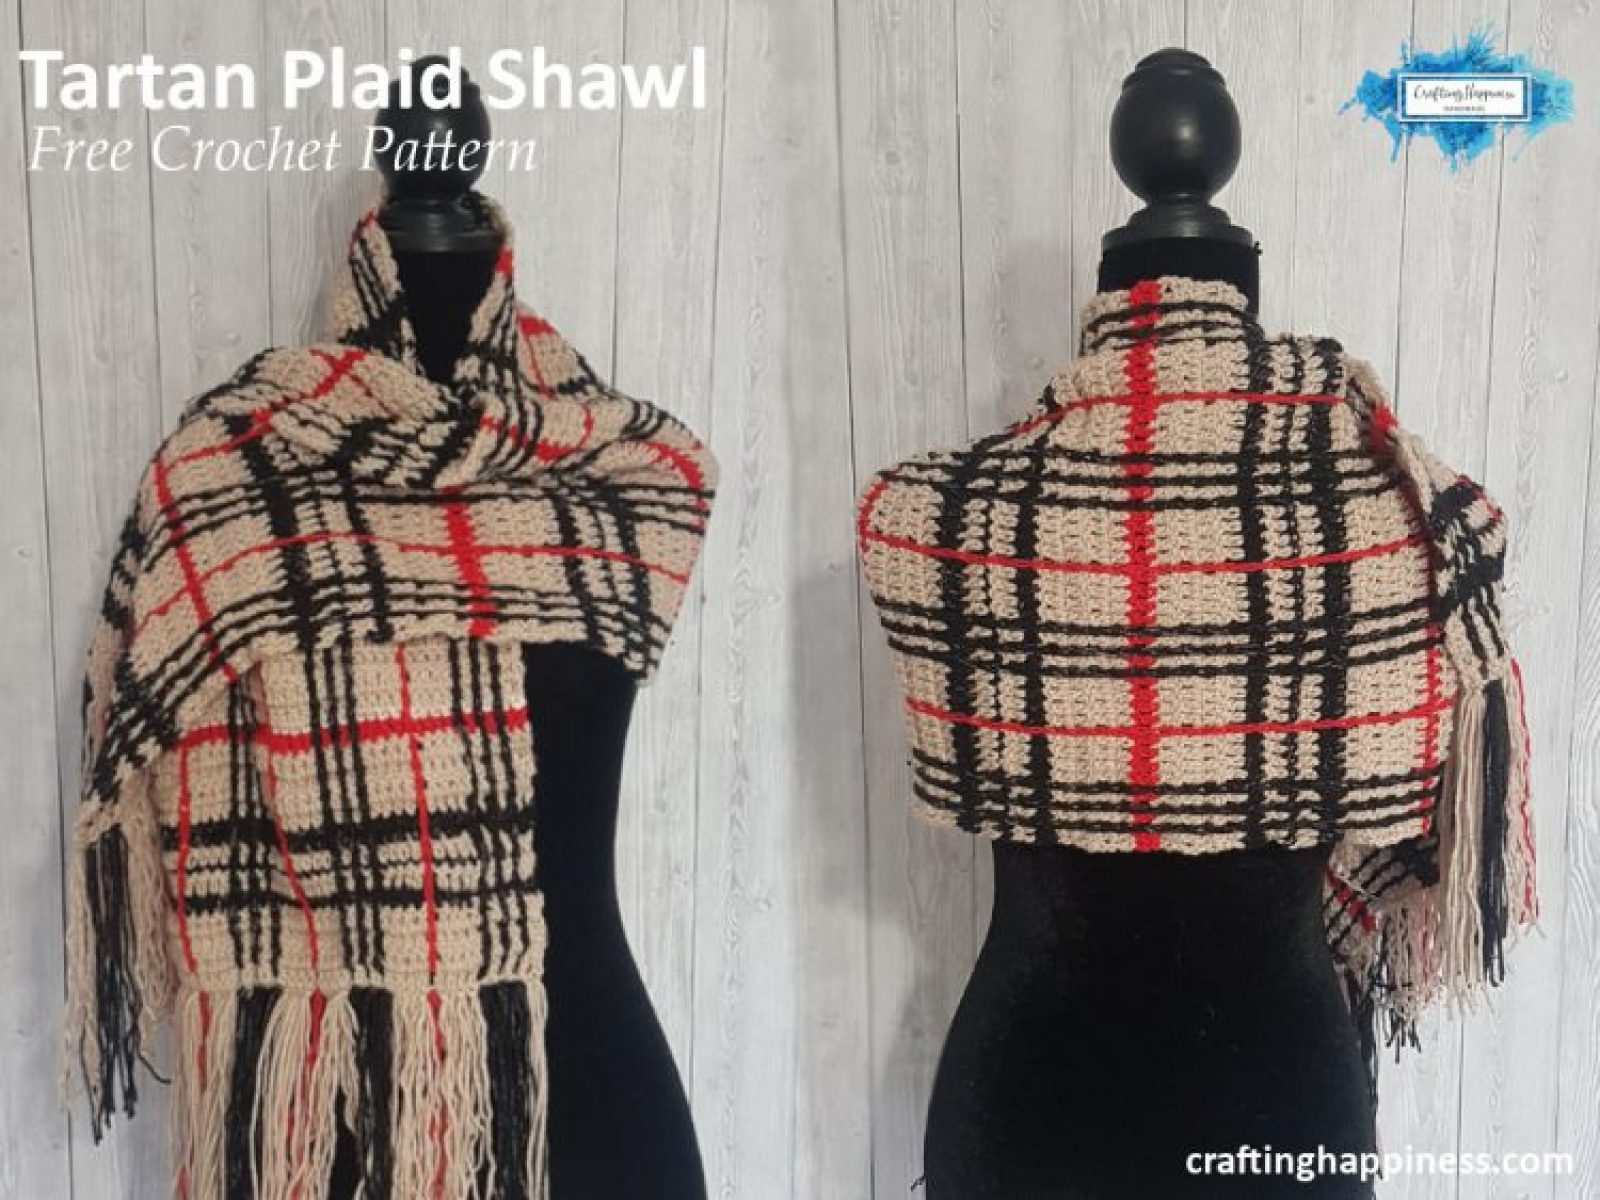 Tartan Plaid Shawl Free Crochet Pattern by Crafting Happiness